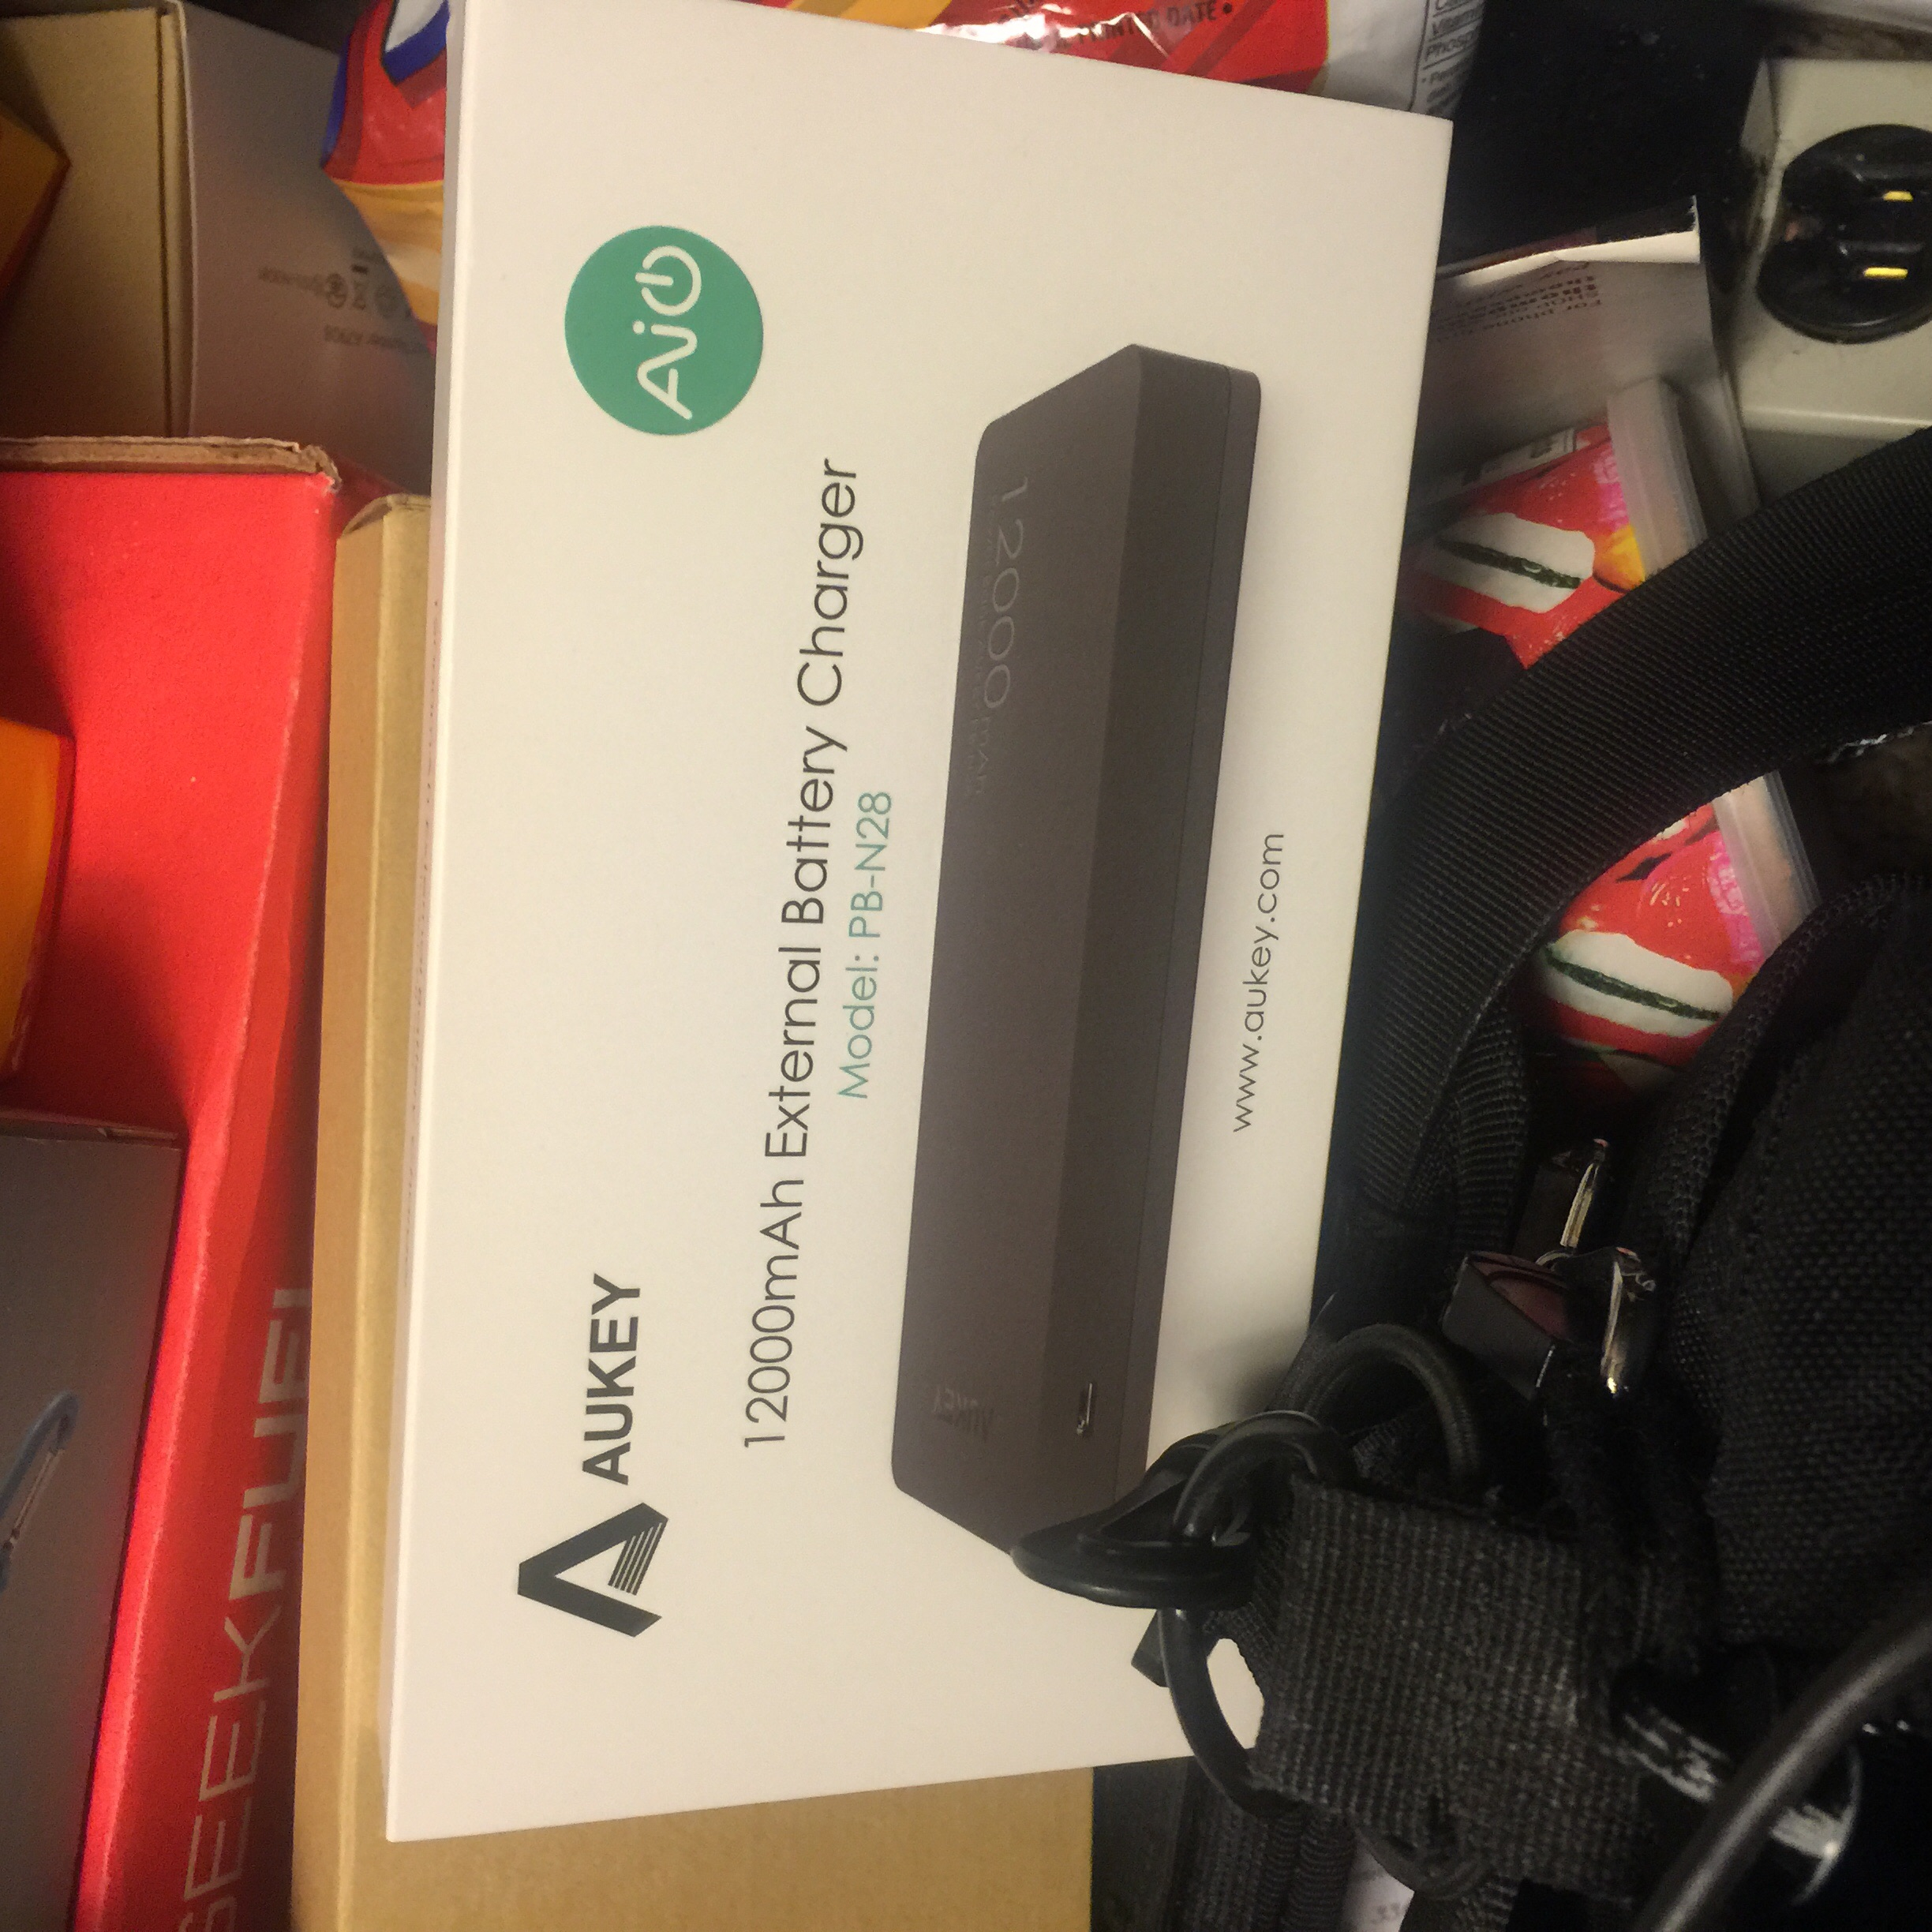 This pack from Aukey, who are quickly becoming one of my favorite accessory companies was on sale for $20 when they sent it for review.  It features auto sensing technology that adjusted the output on the USB ports to charge devices as quickly as they would take power, and more importantly reduce output when your device gets closer to fully charged or is a lower powered device.  Very important to prevent overheating, especially when they are carried together in a gear bag.